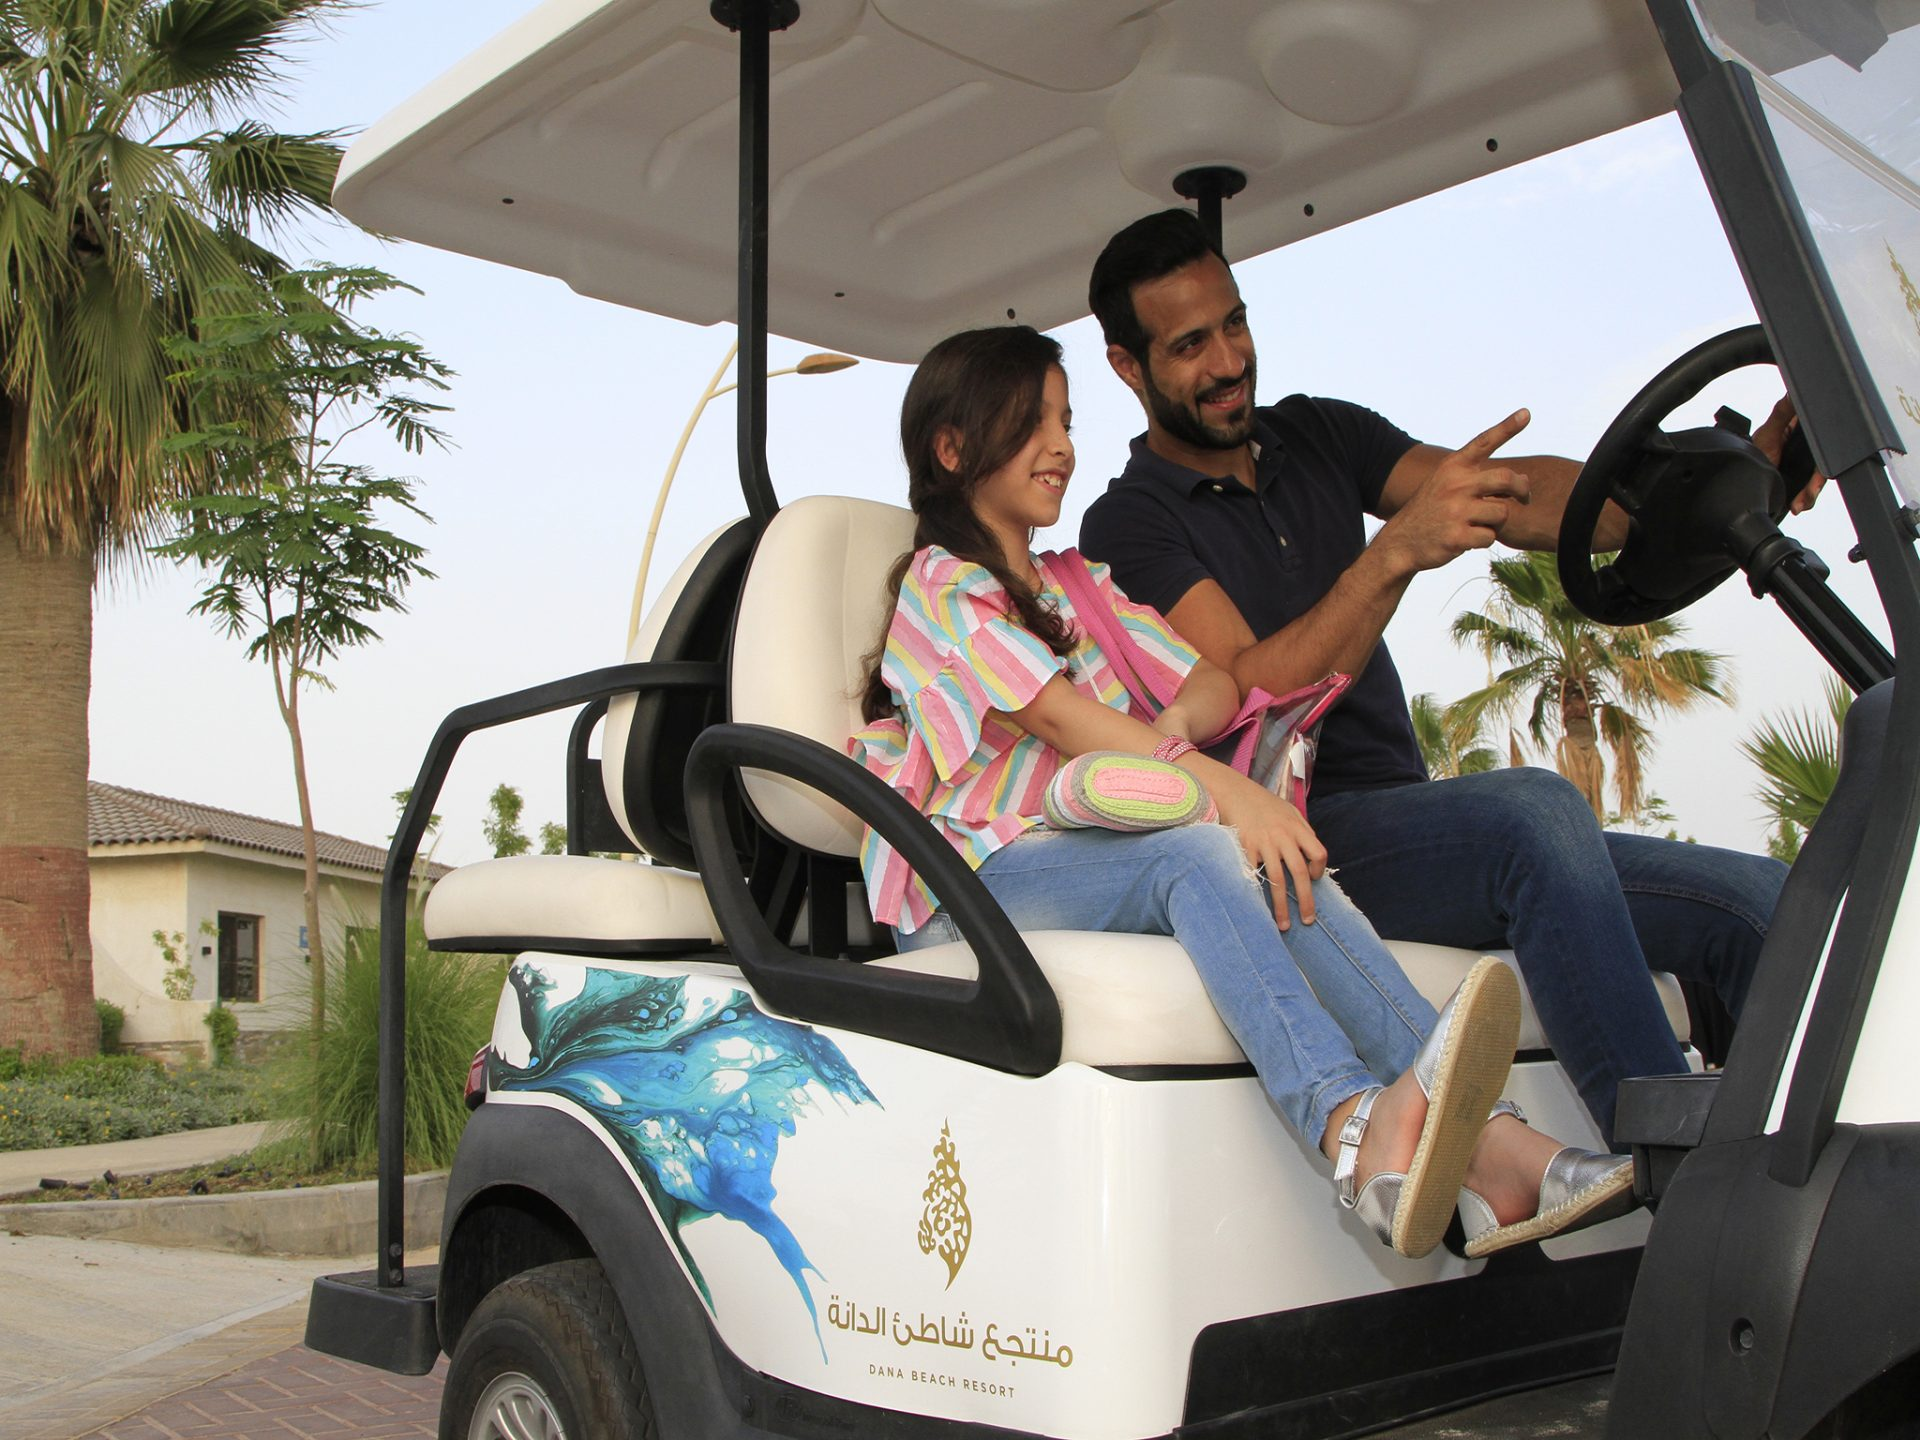 driving club cars around Dana Beach Resort